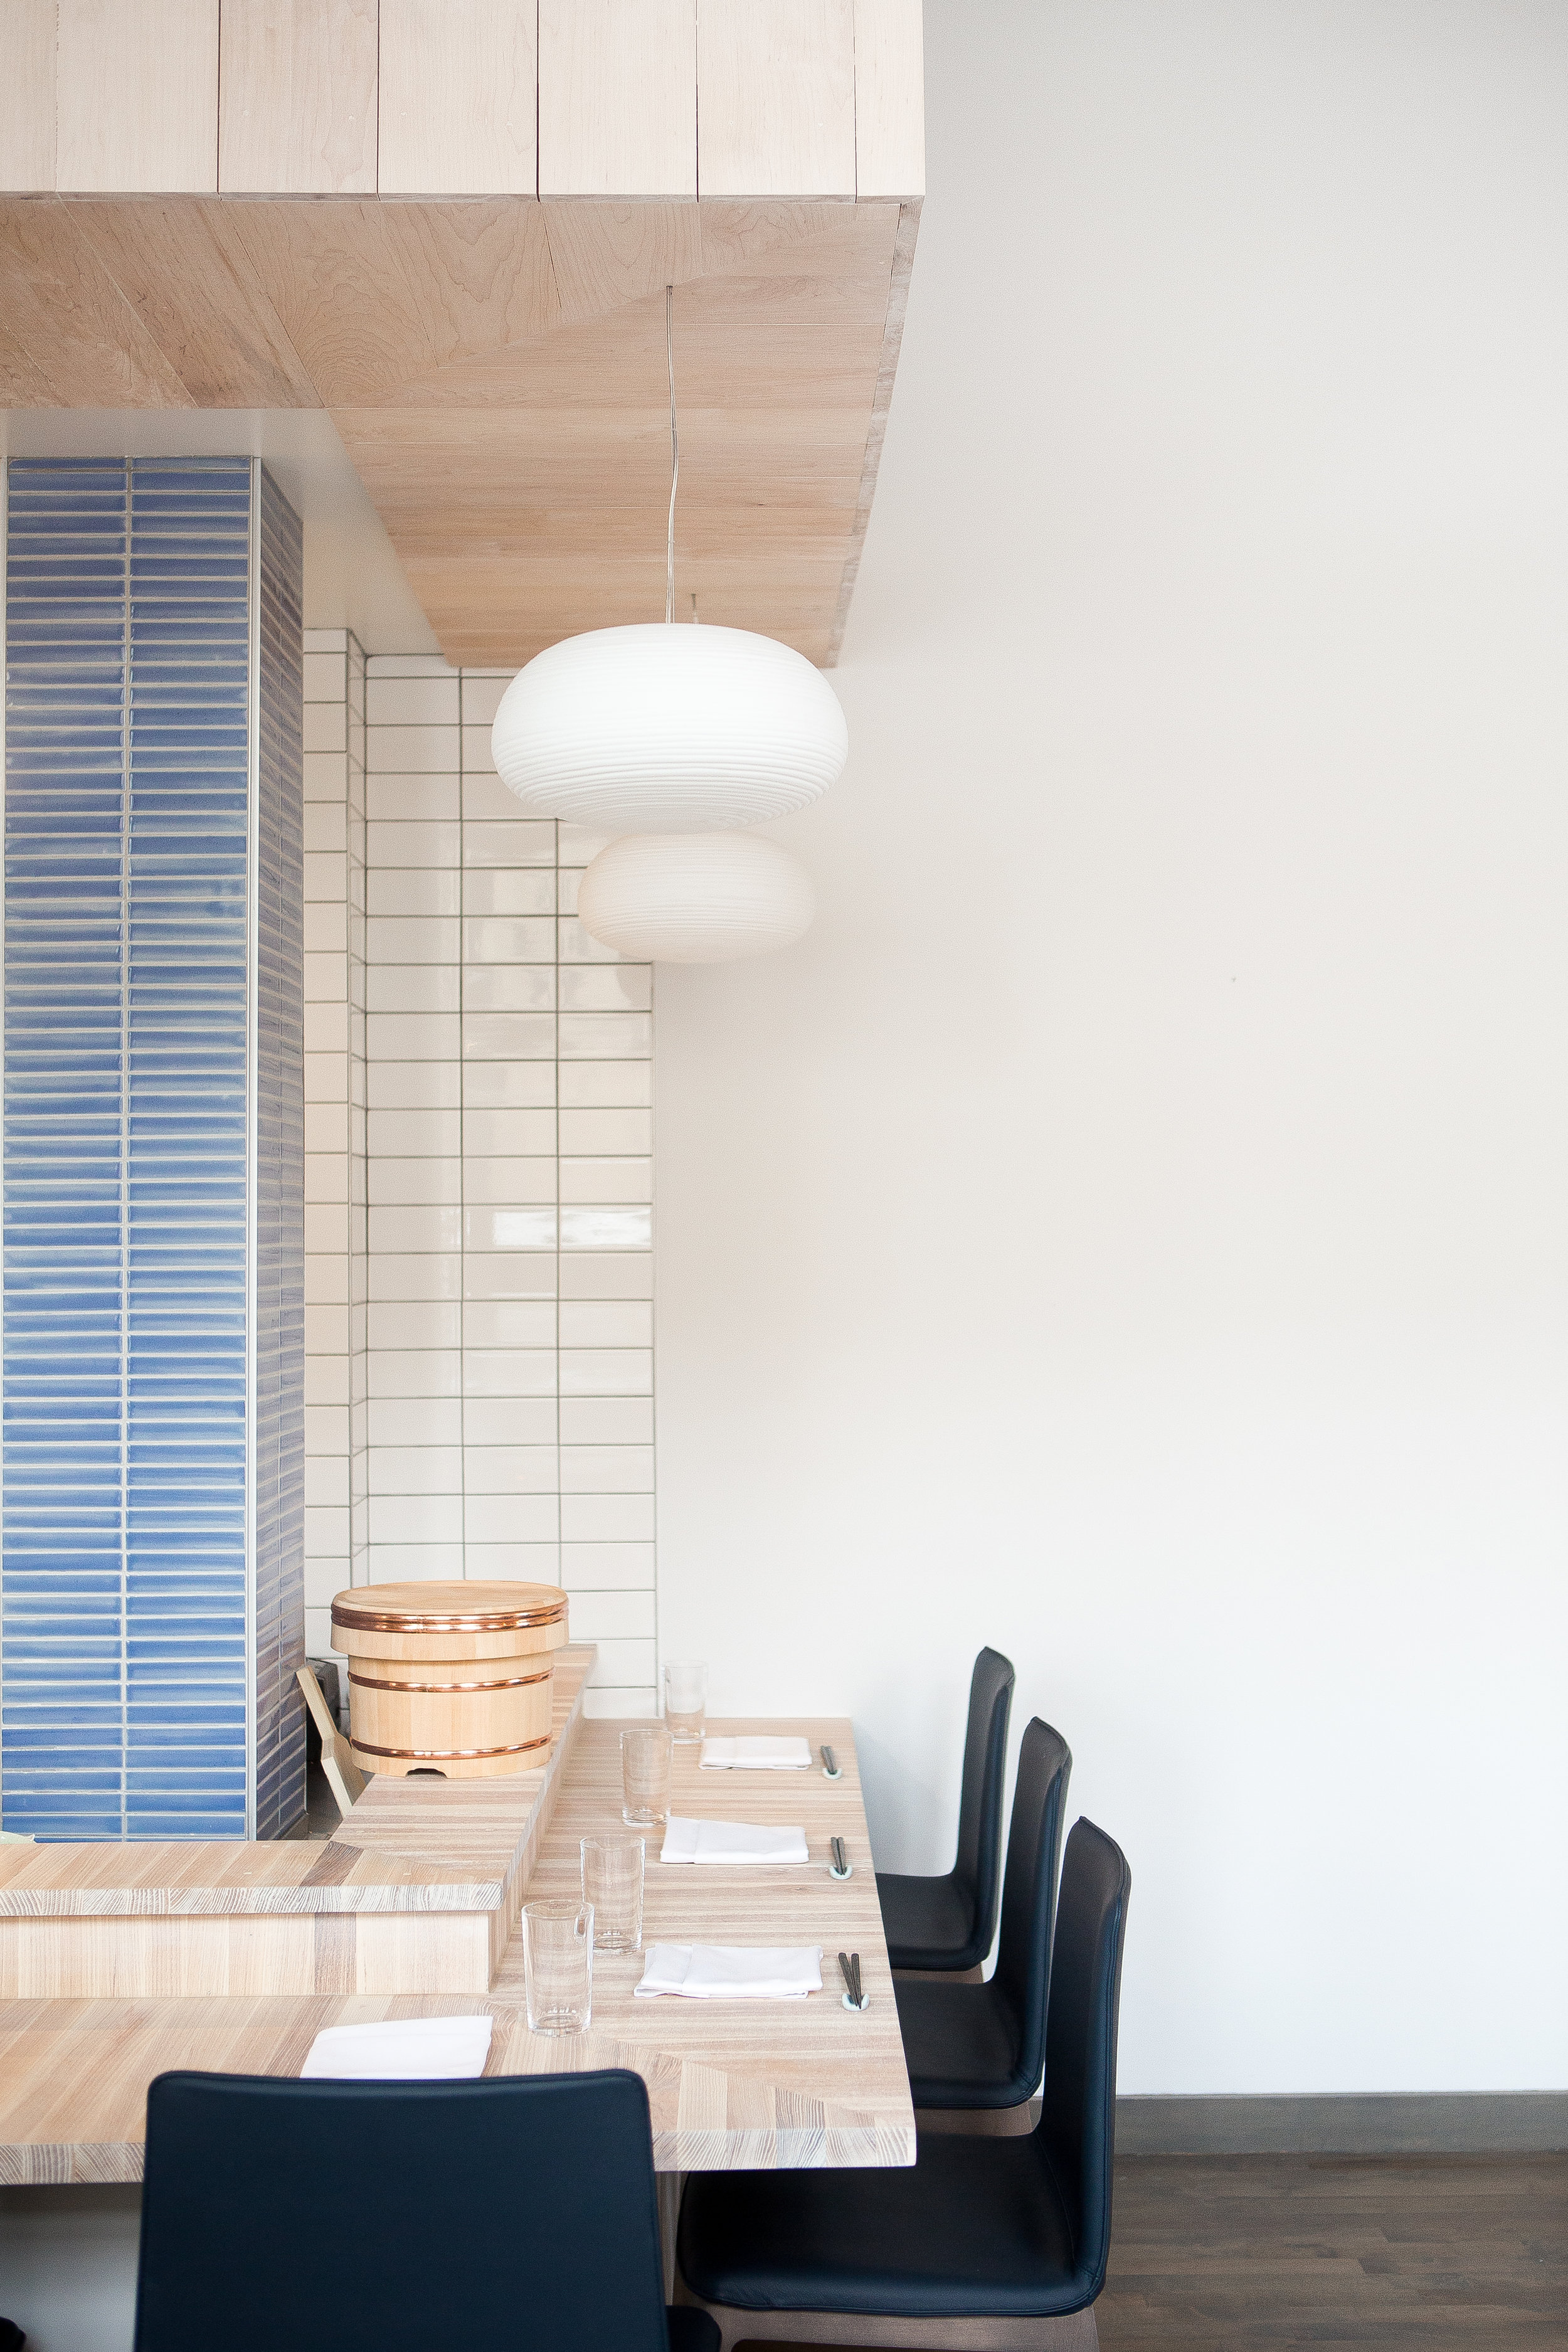 custom wood bar in restaurant with horizontally stacked gridded tile